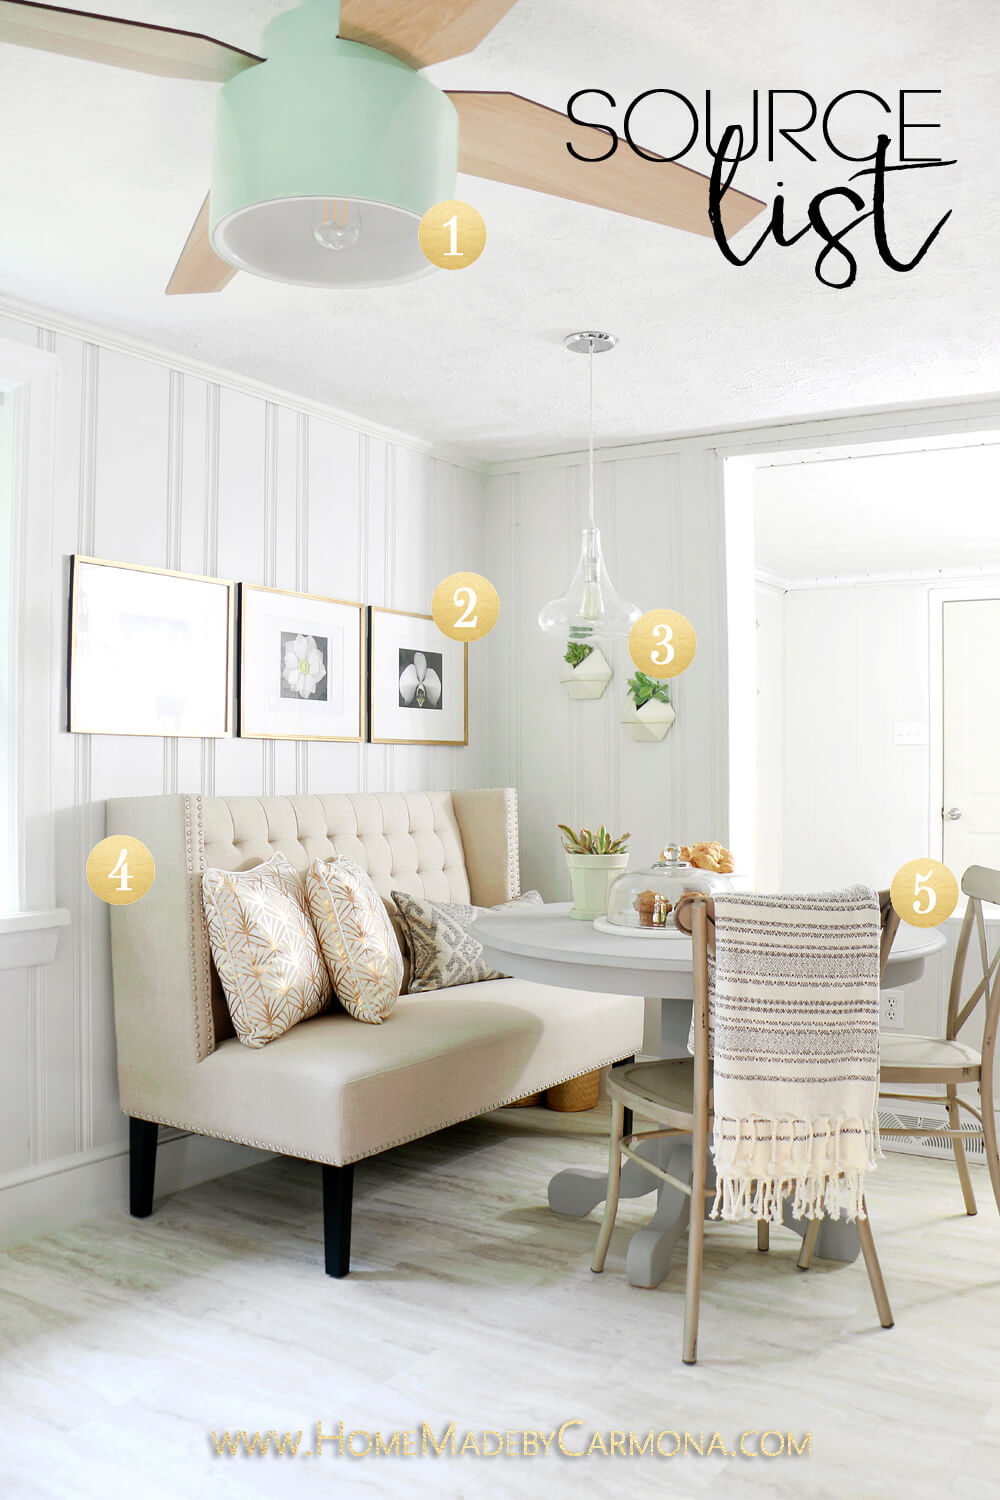 Source List - Kitchen Eat-in Breakfast Nook